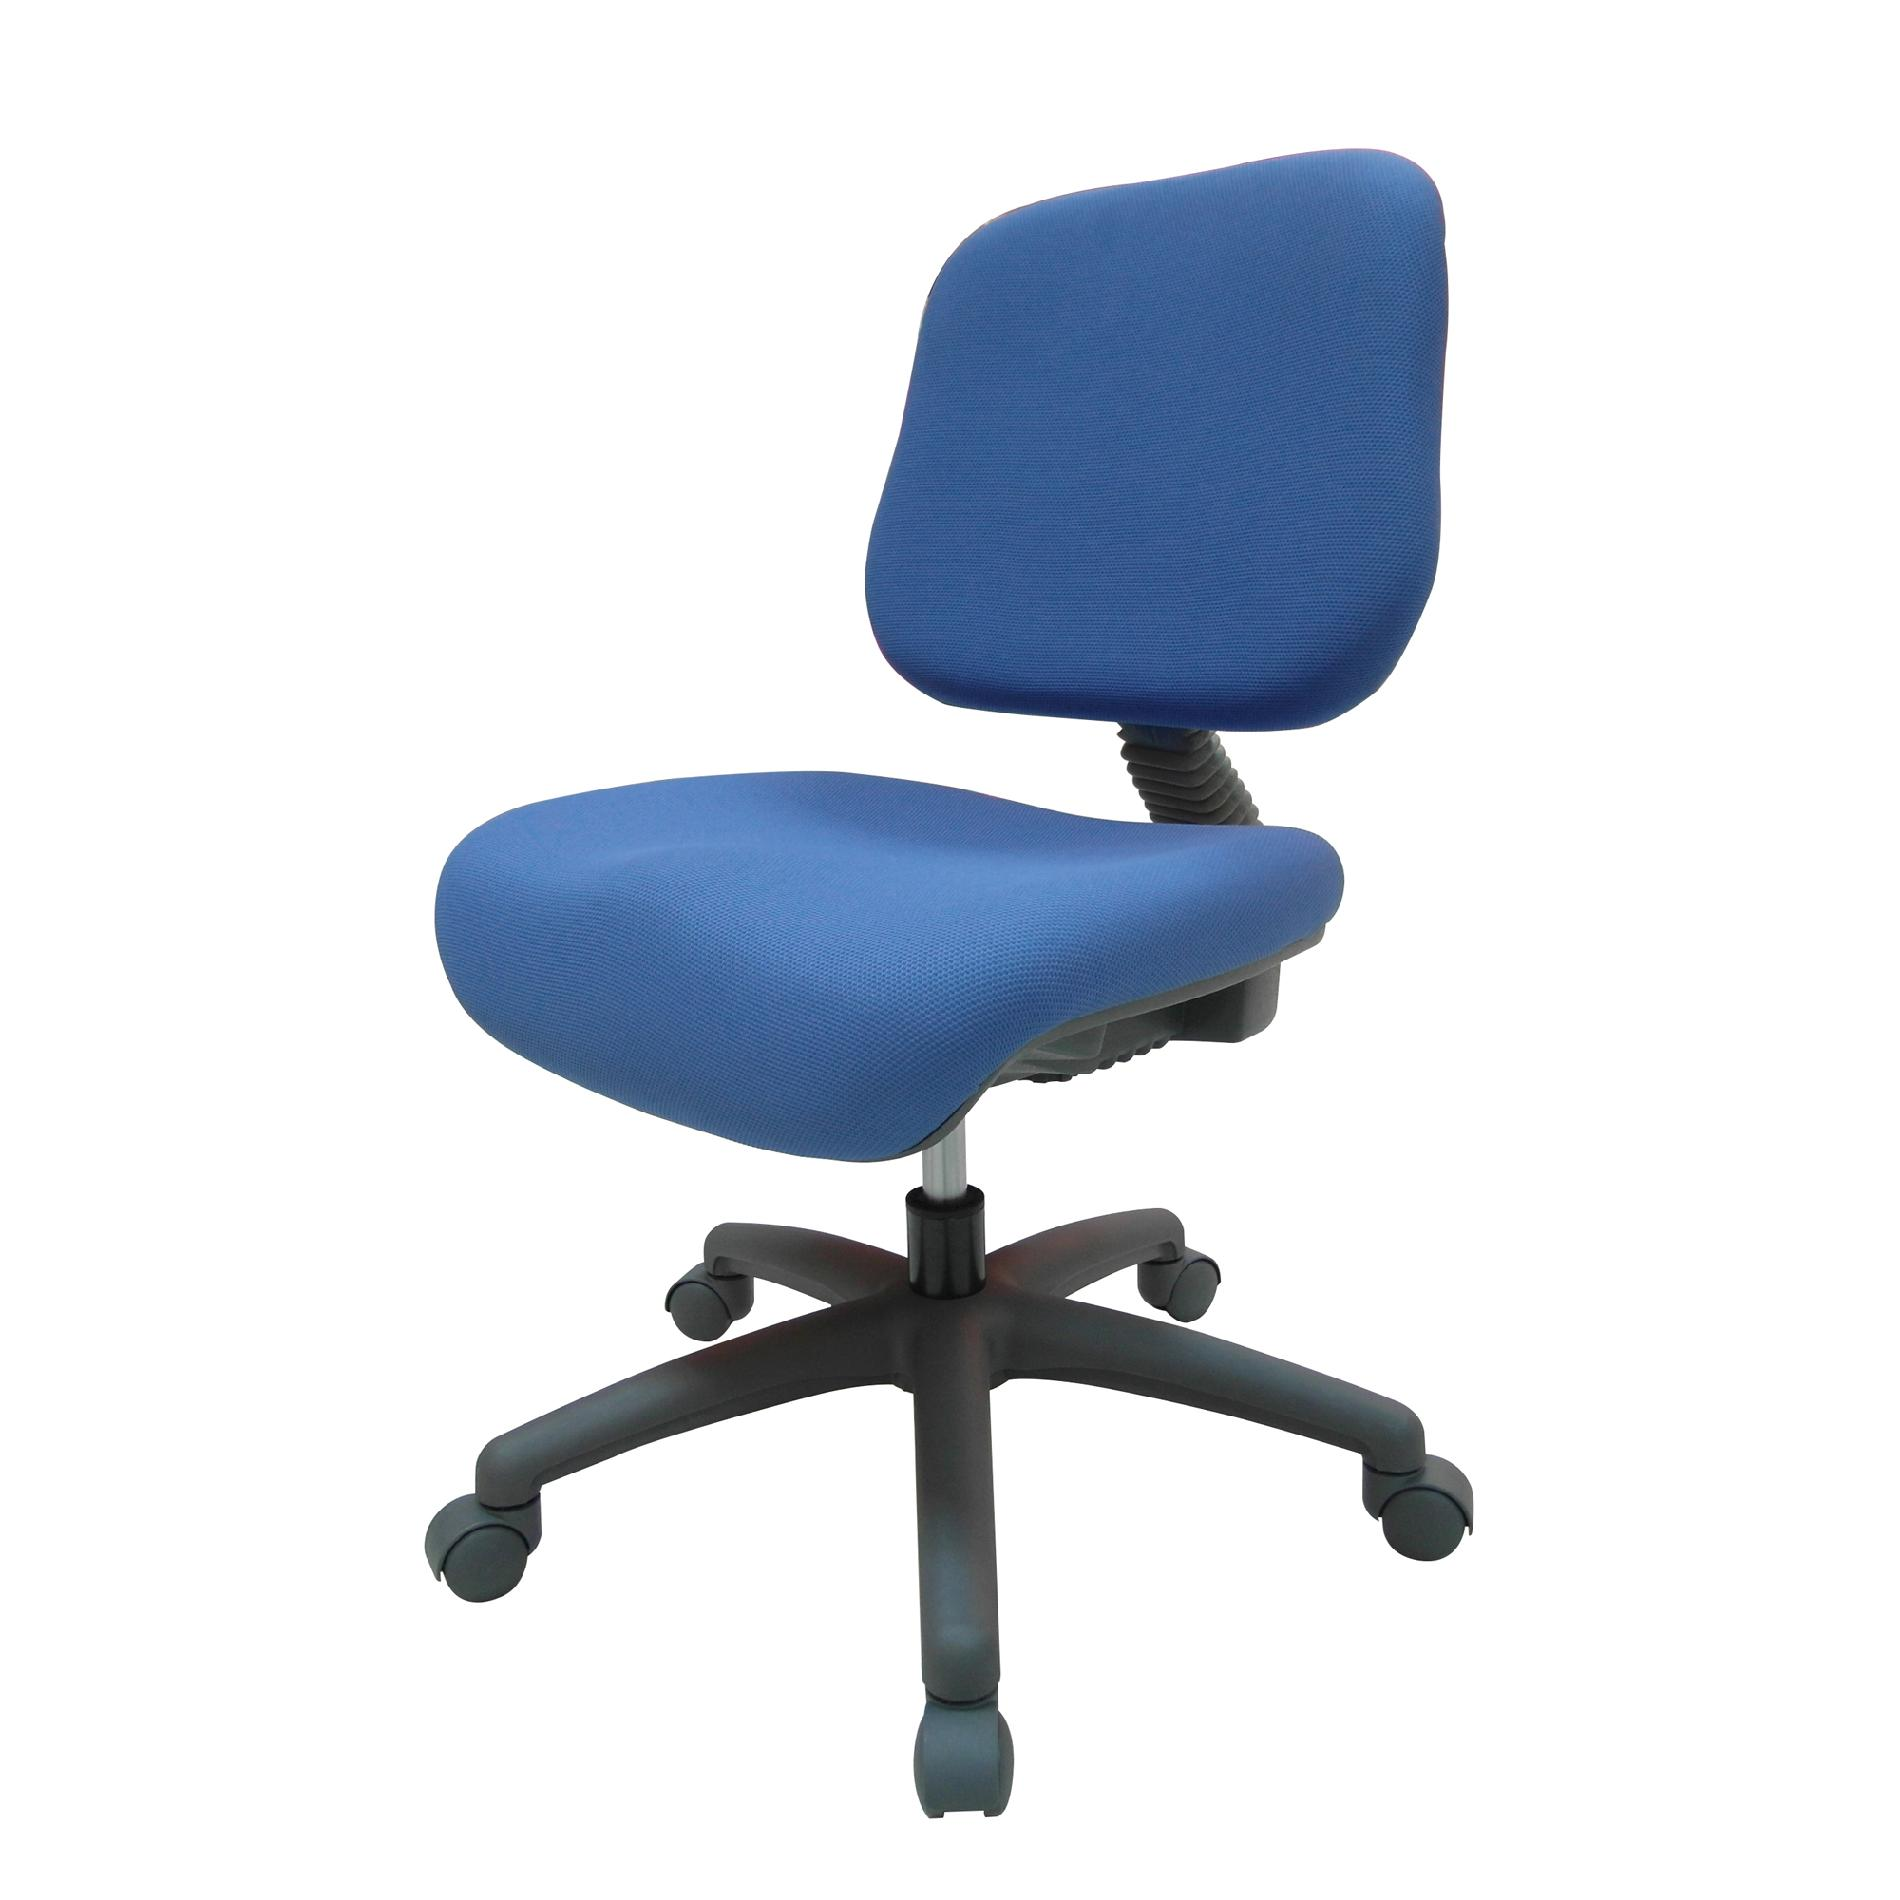 spinning top chair south africa outdoor patio blue youth comfortable adjustable with castors